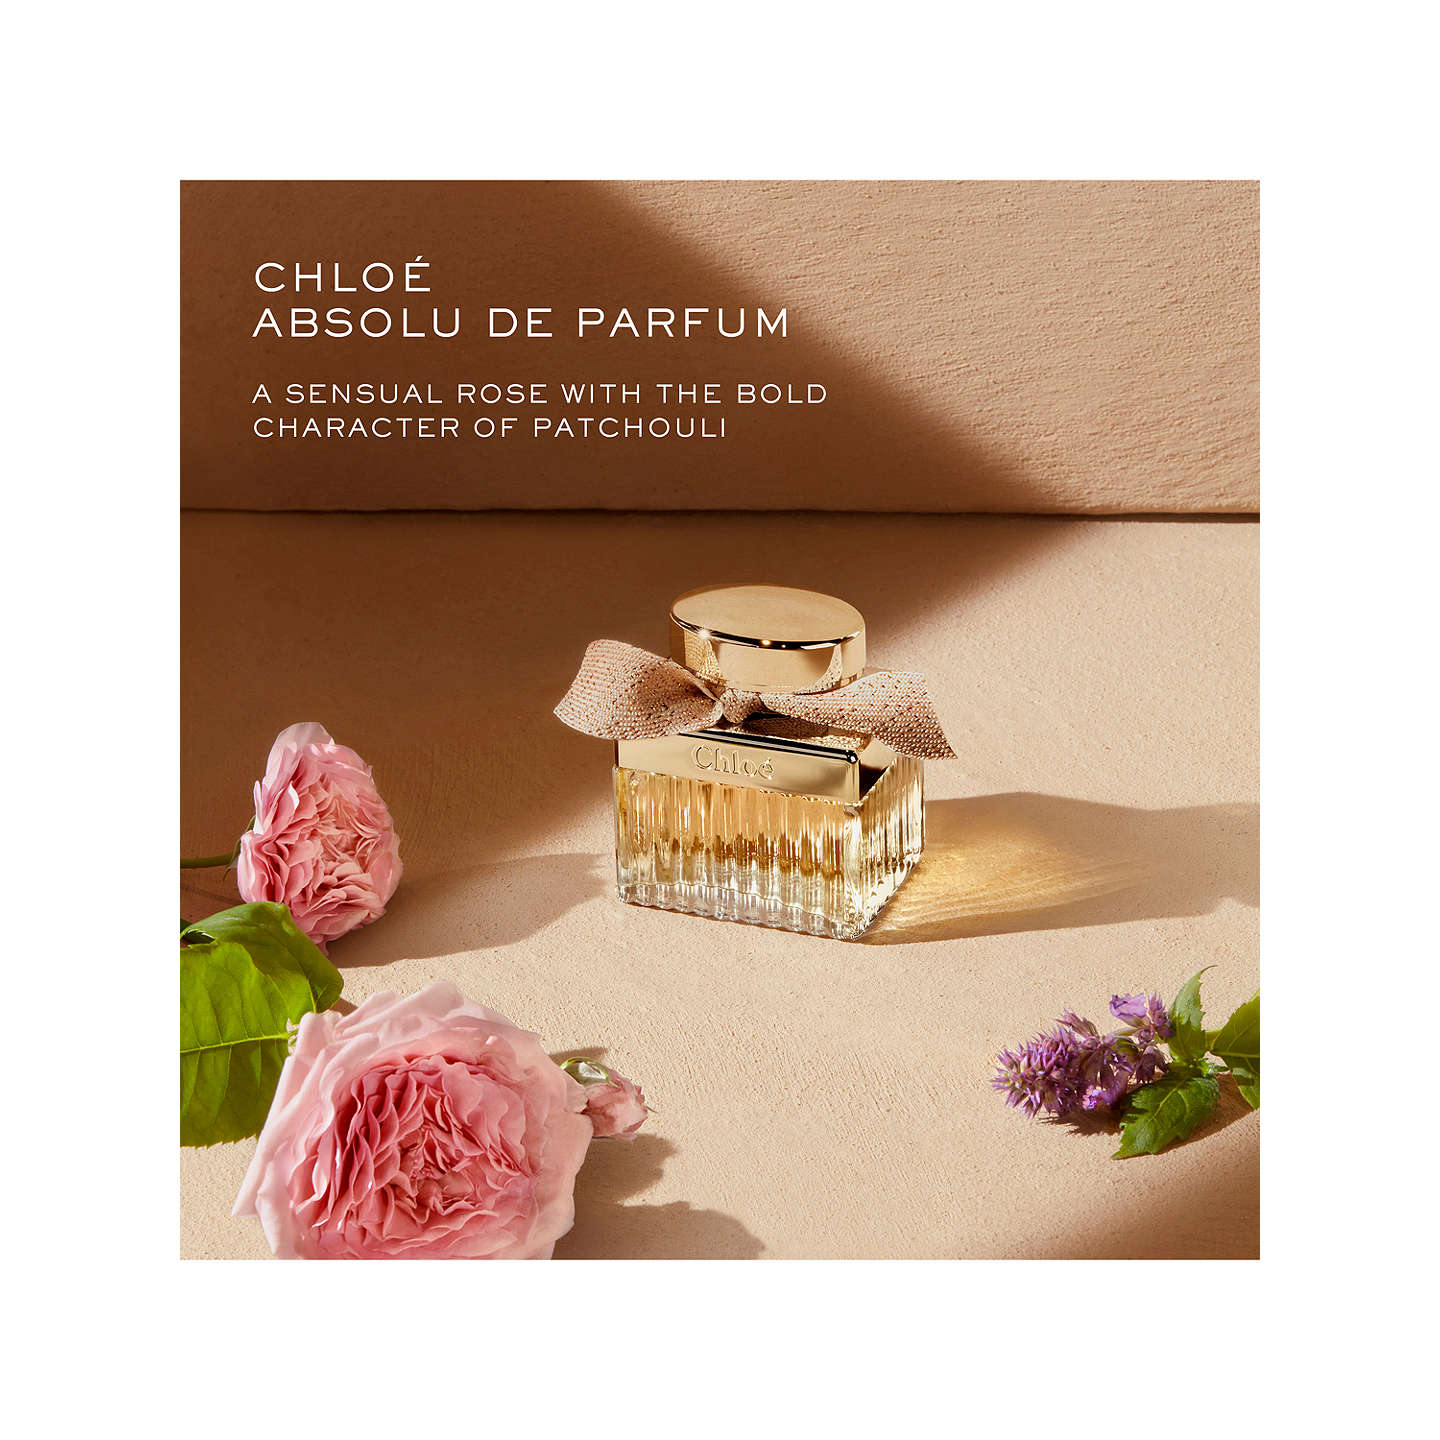 BuyChloé Absolu Eau de Parfum, 50ml Online at johnlewis.com